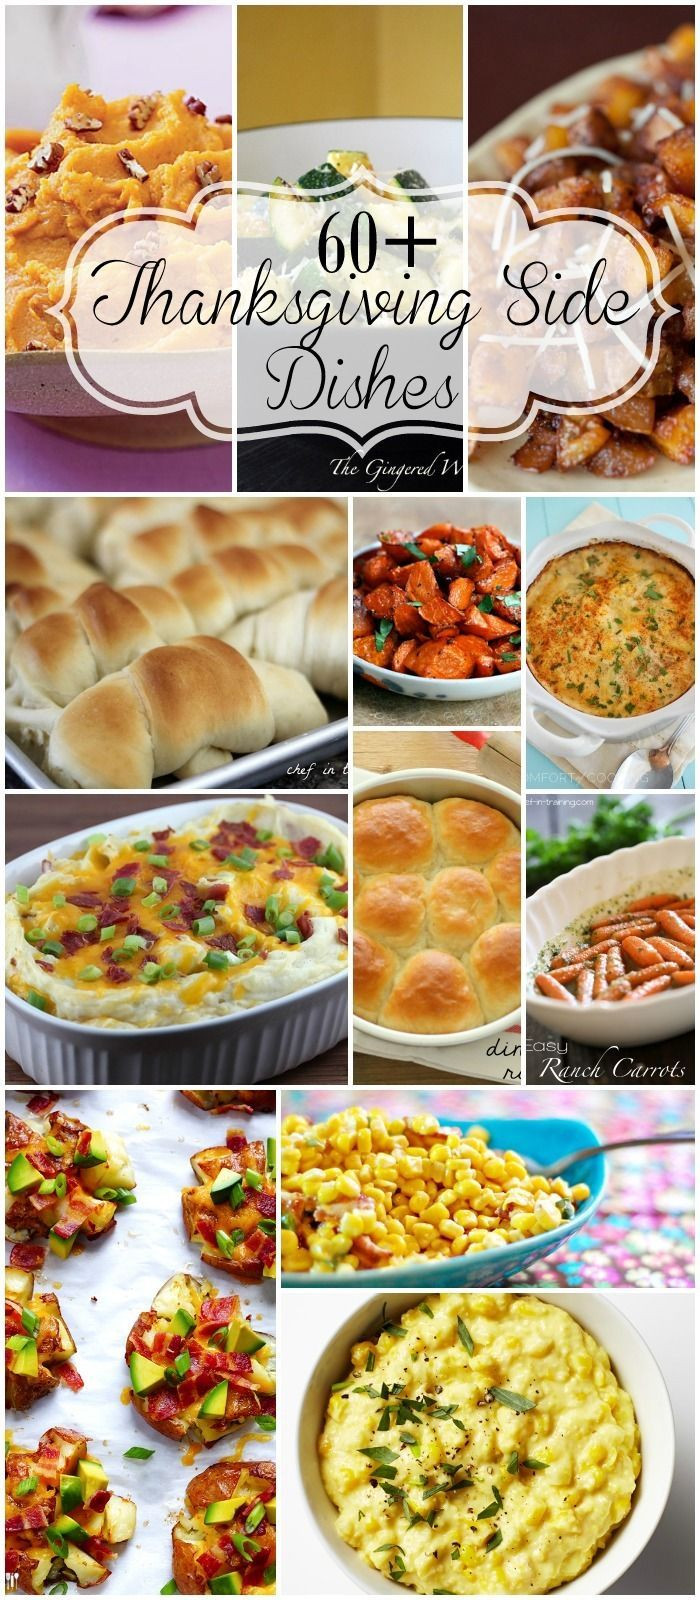 Recipes For Thanksgiving Dinner  60 Thanksgiving Sides veggies potatoes and rolls